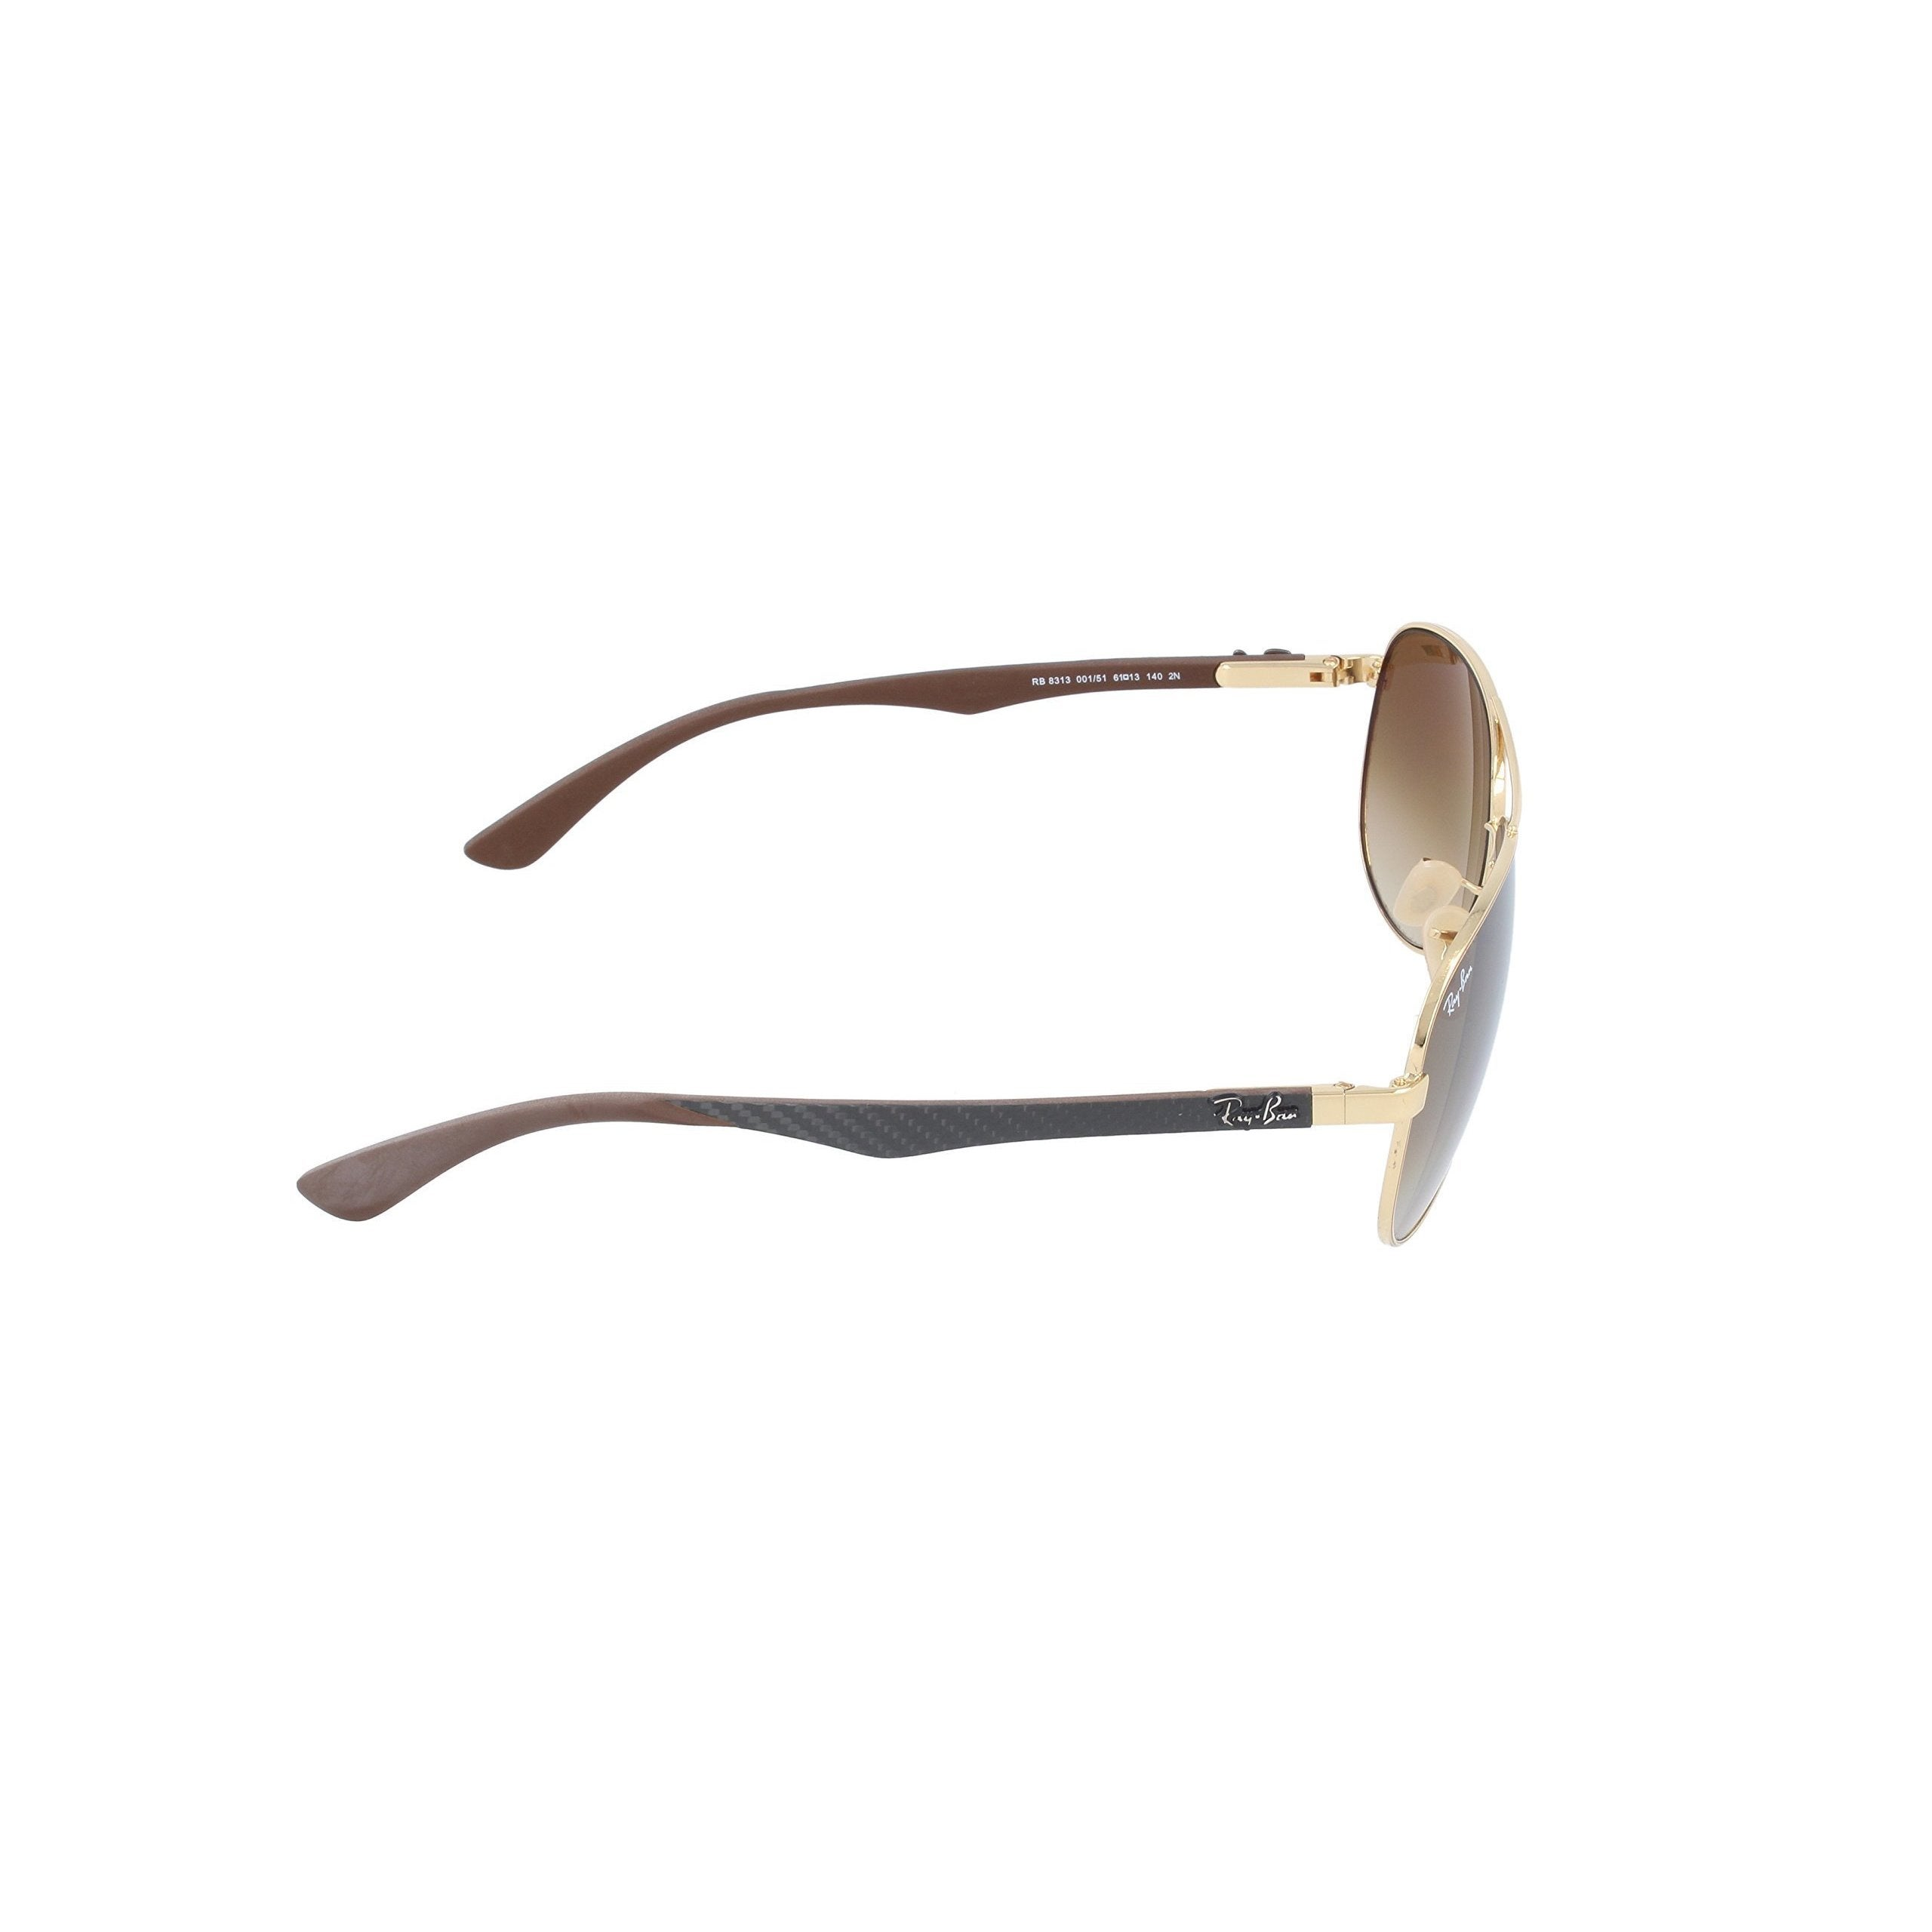 6555ef2c4ef42 Shop Ray-Ban RB8313 001 51 Unisex Gold Grey Frame Light Brown Gradient Lens  Sunglasses - Free Shipping Today - Overstock.com - 15811971